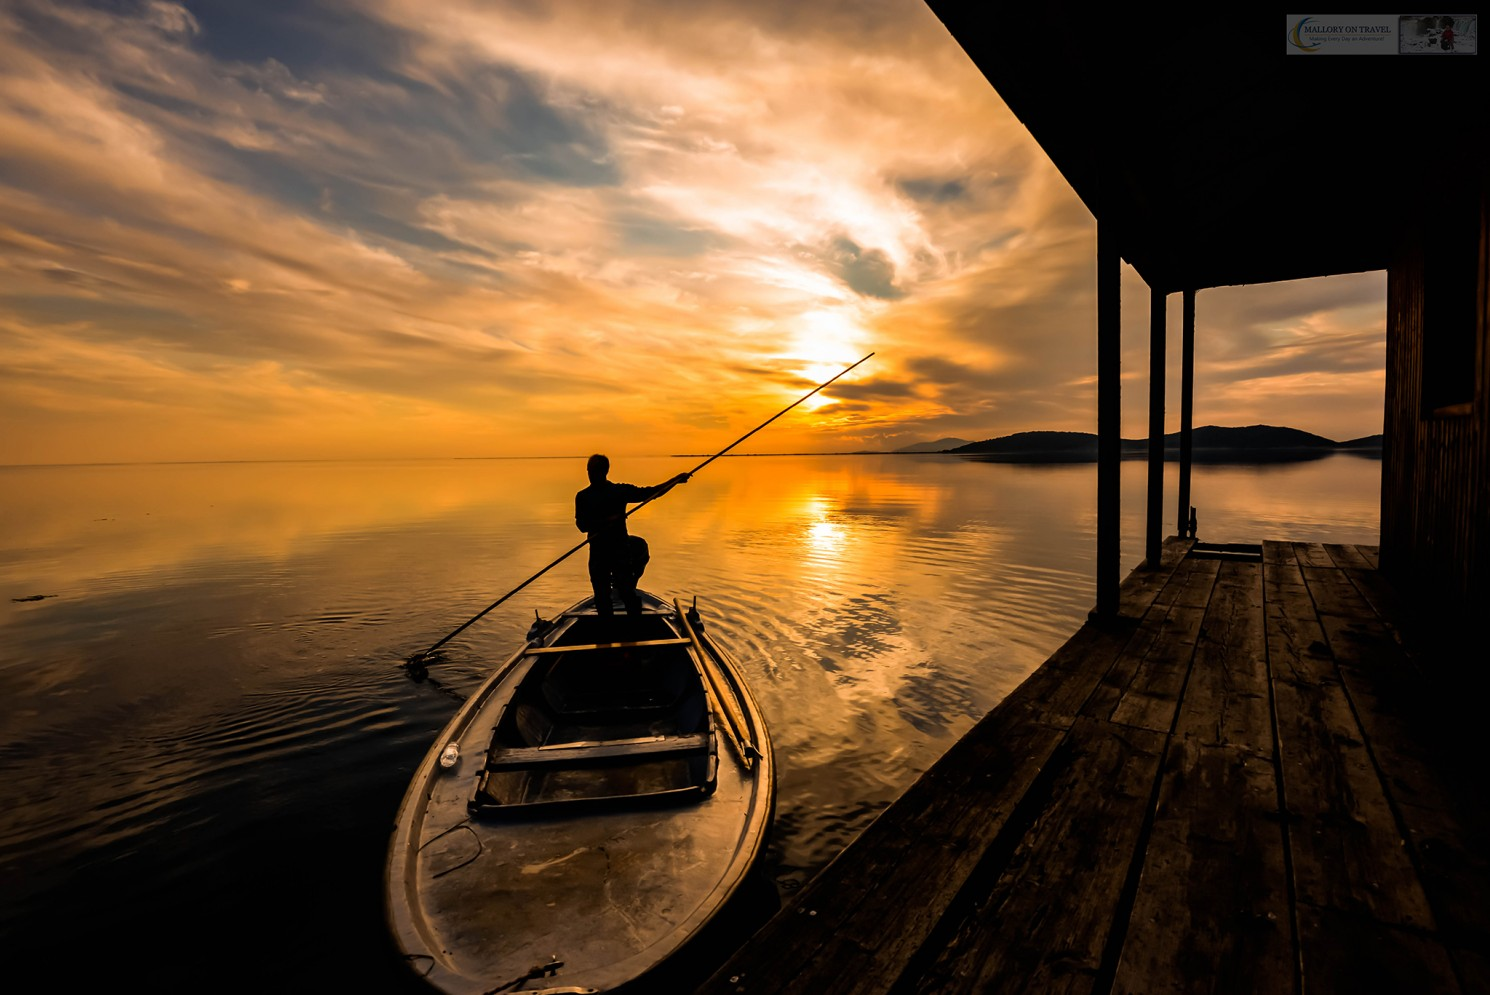 Stunning sunset and silhouetted boat fisherman on Messolonghi lagoons in western Greece on Mallory on Travel adventure travel, photography, travel Iain Mallory Messolonghi_8361-140